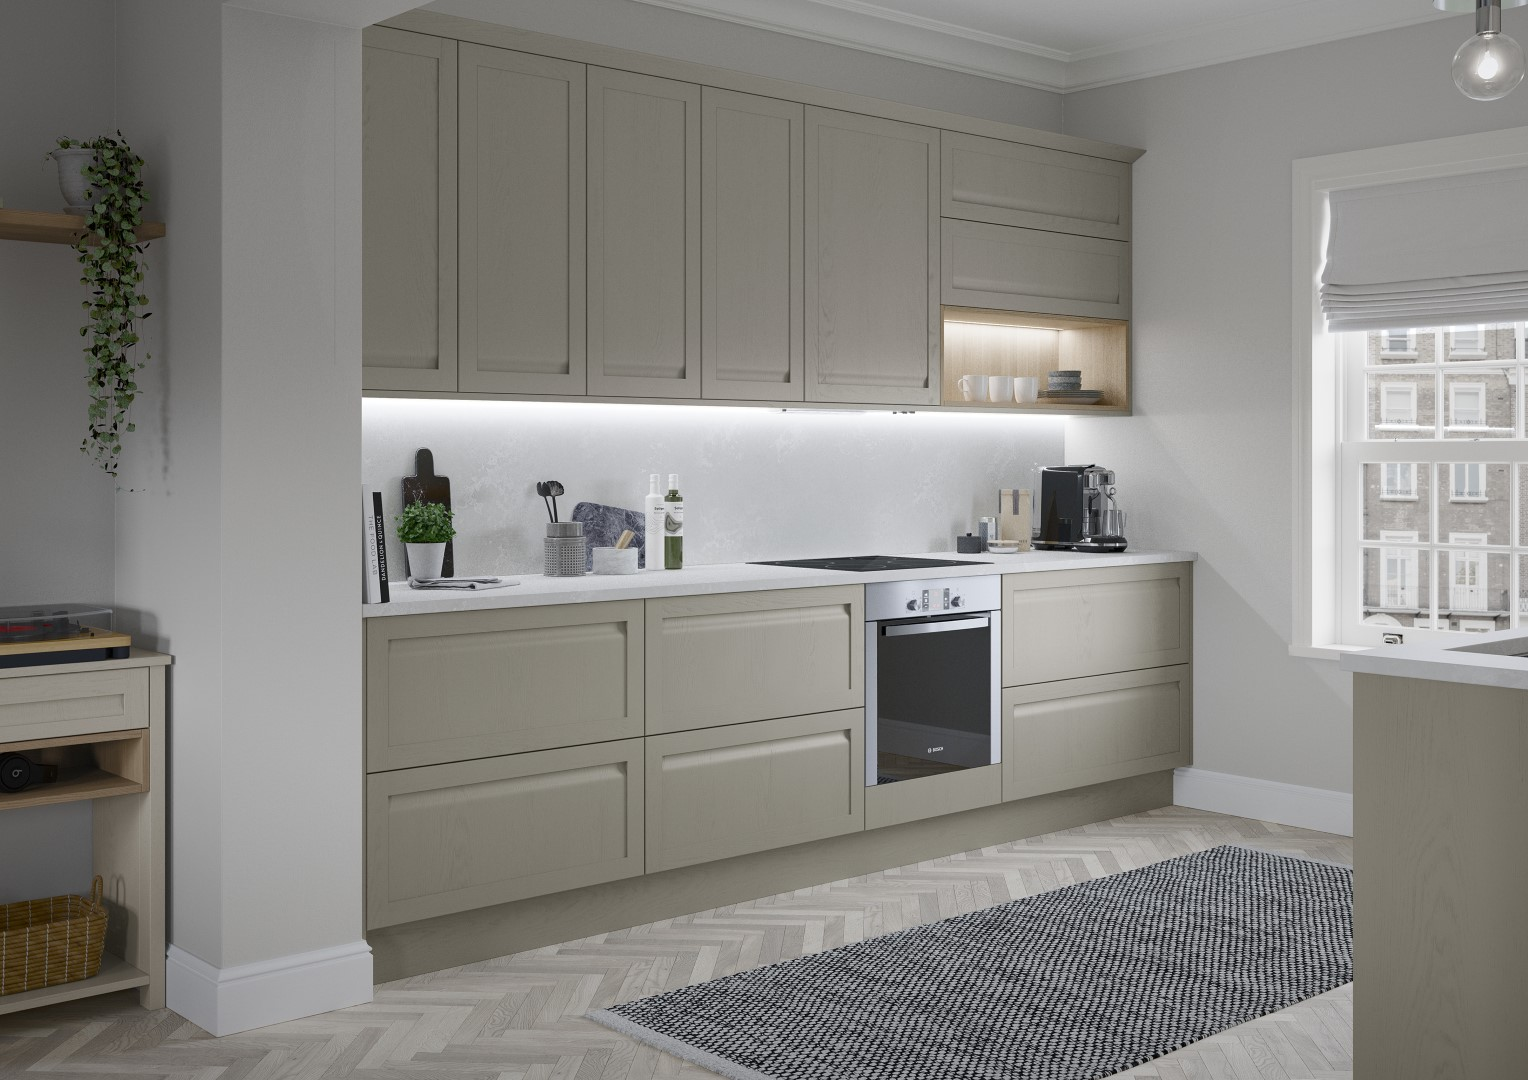 Harborne Shell and Stone - Kitchen Design - Alan Kelly Kitchens - Waterford - 1